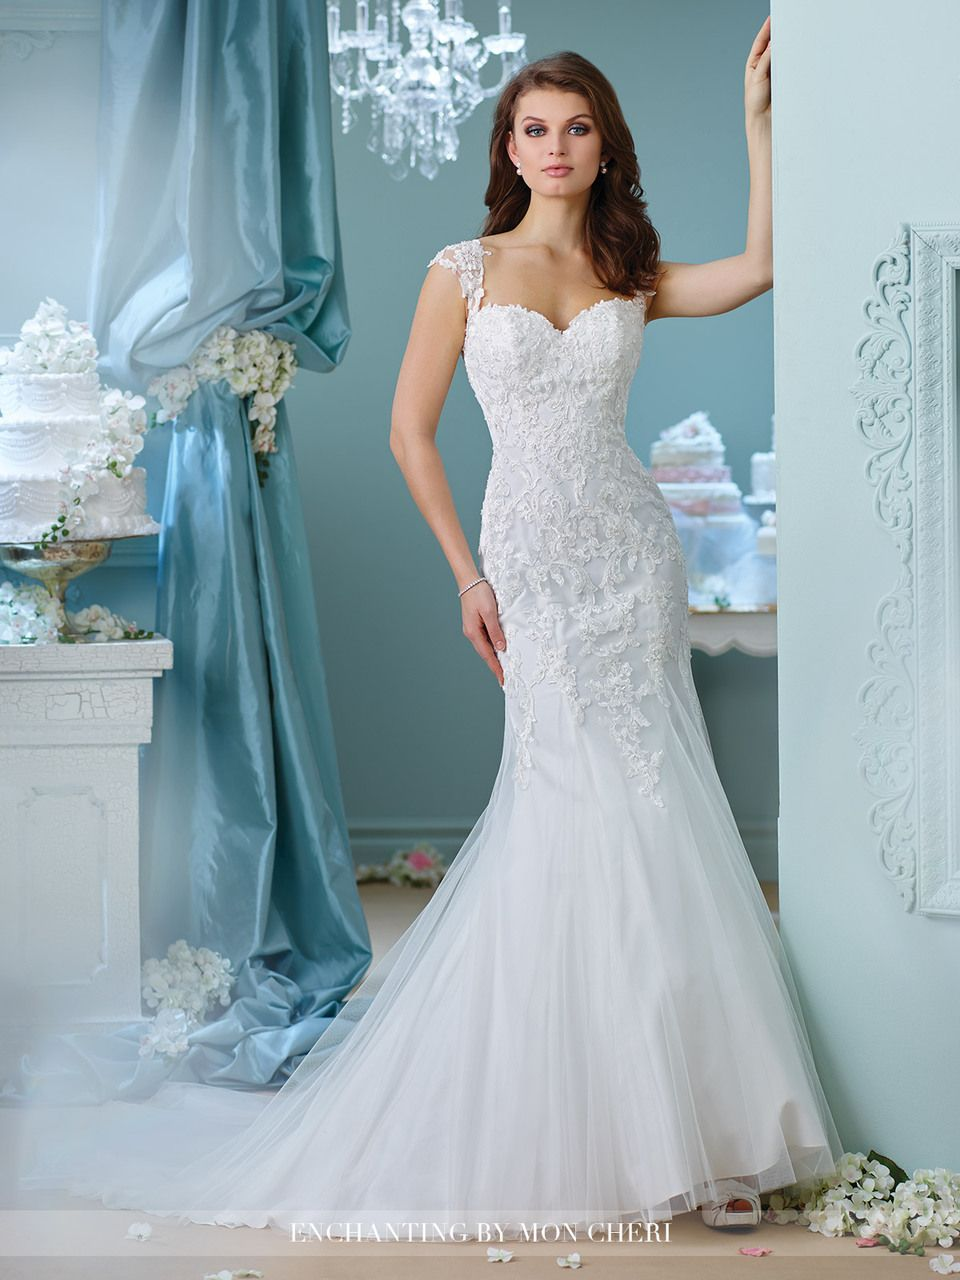 Buy the Enchanting by Mon Cheri 216158 Dress at CoutureCandy, the ...